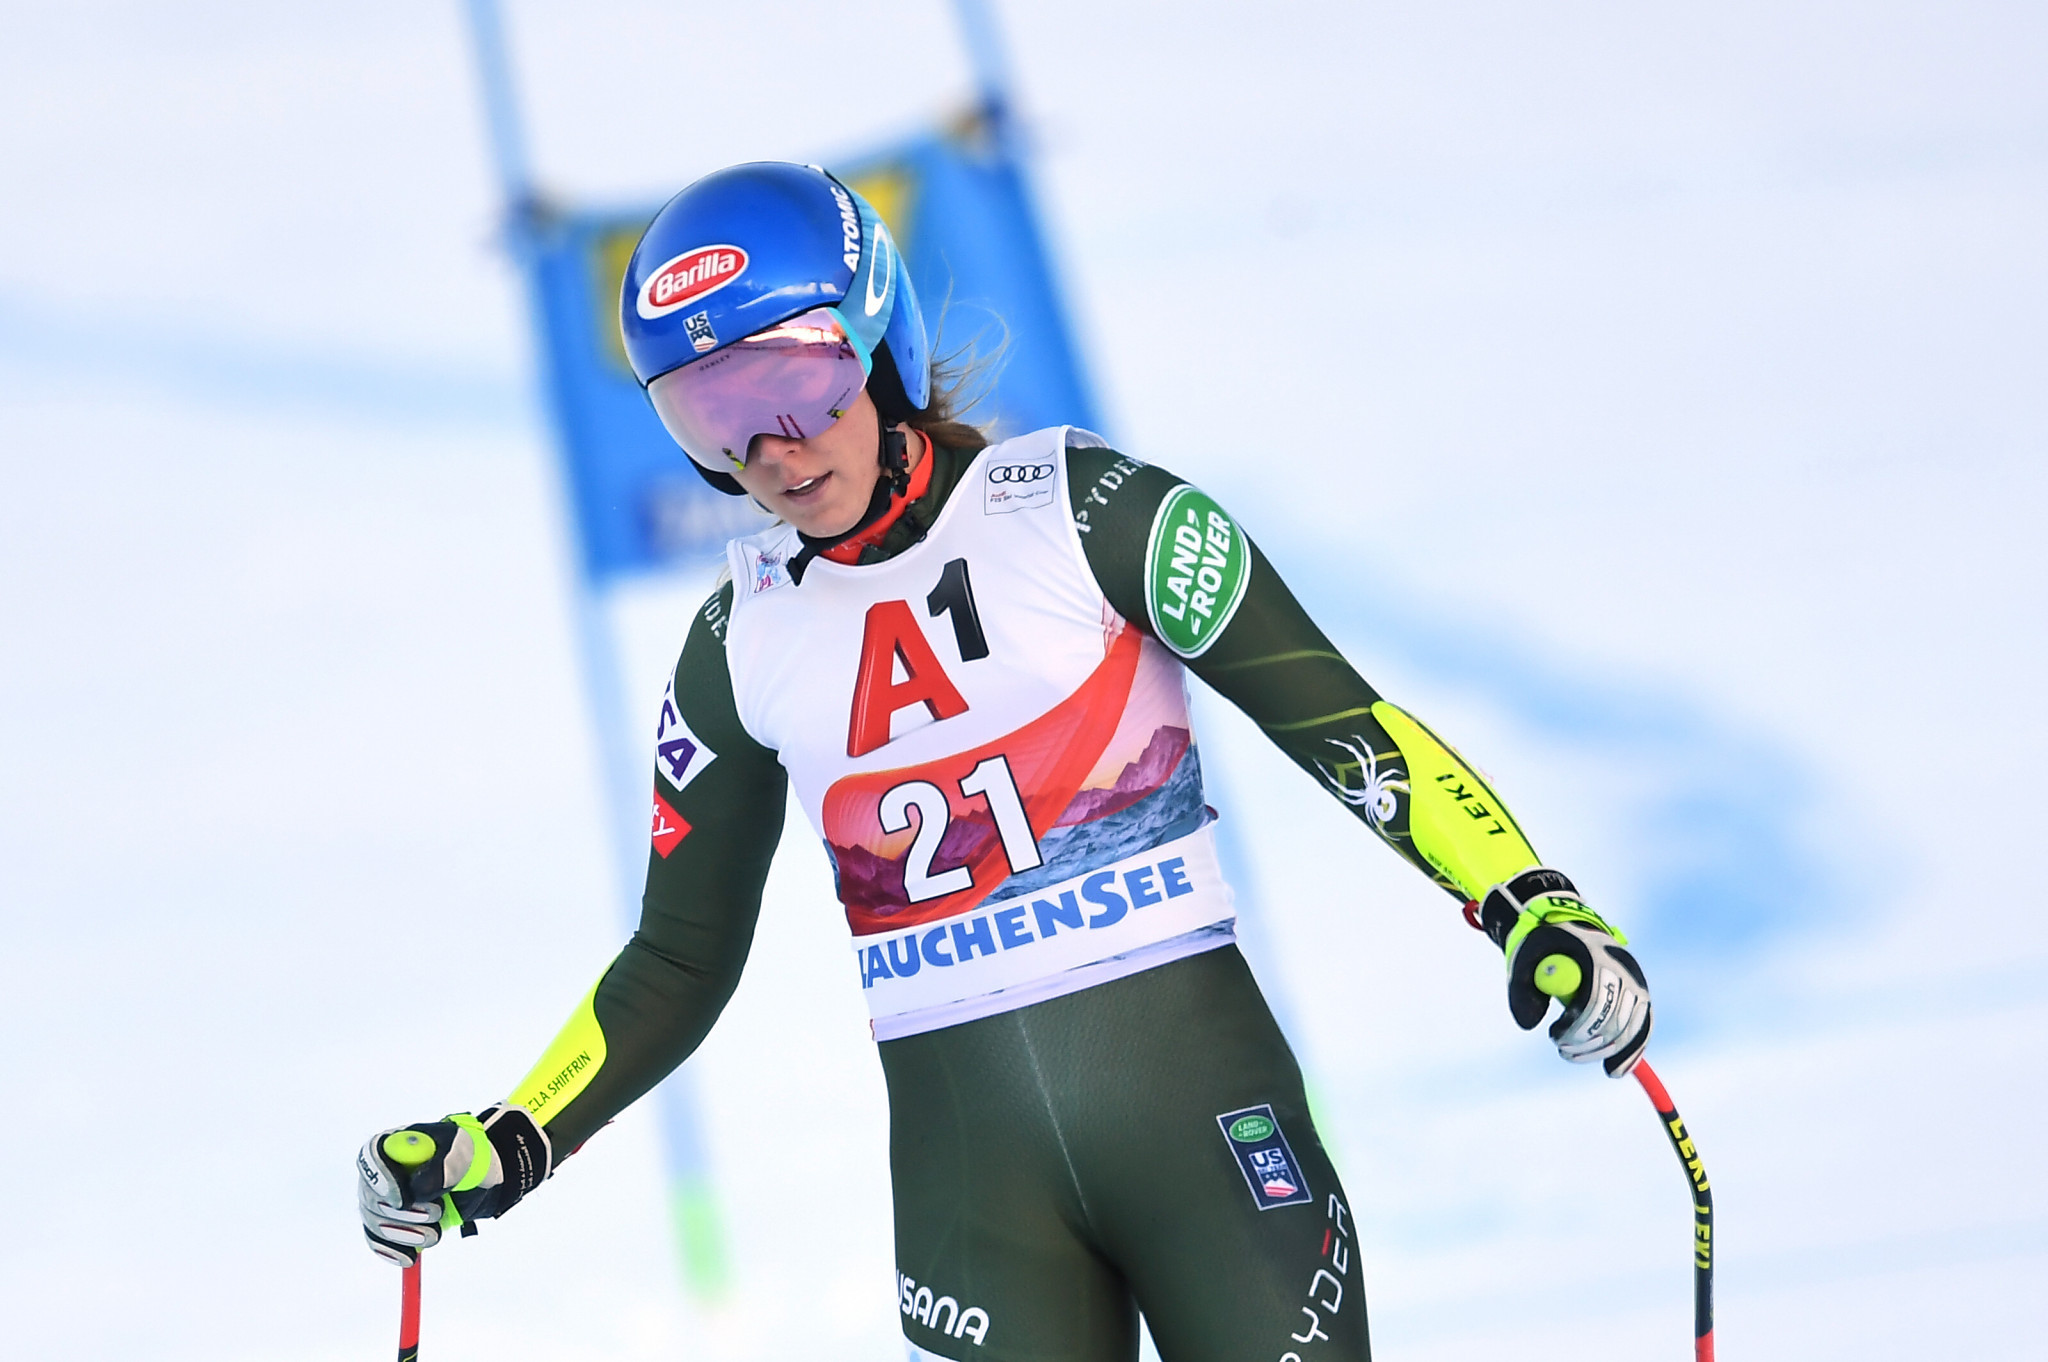 Mikaela Shiffrin failed to finish her first run in the Alpine combined event in the Austrian resort of Altenmarkt-Zauchensee yesterday ©Getty Images